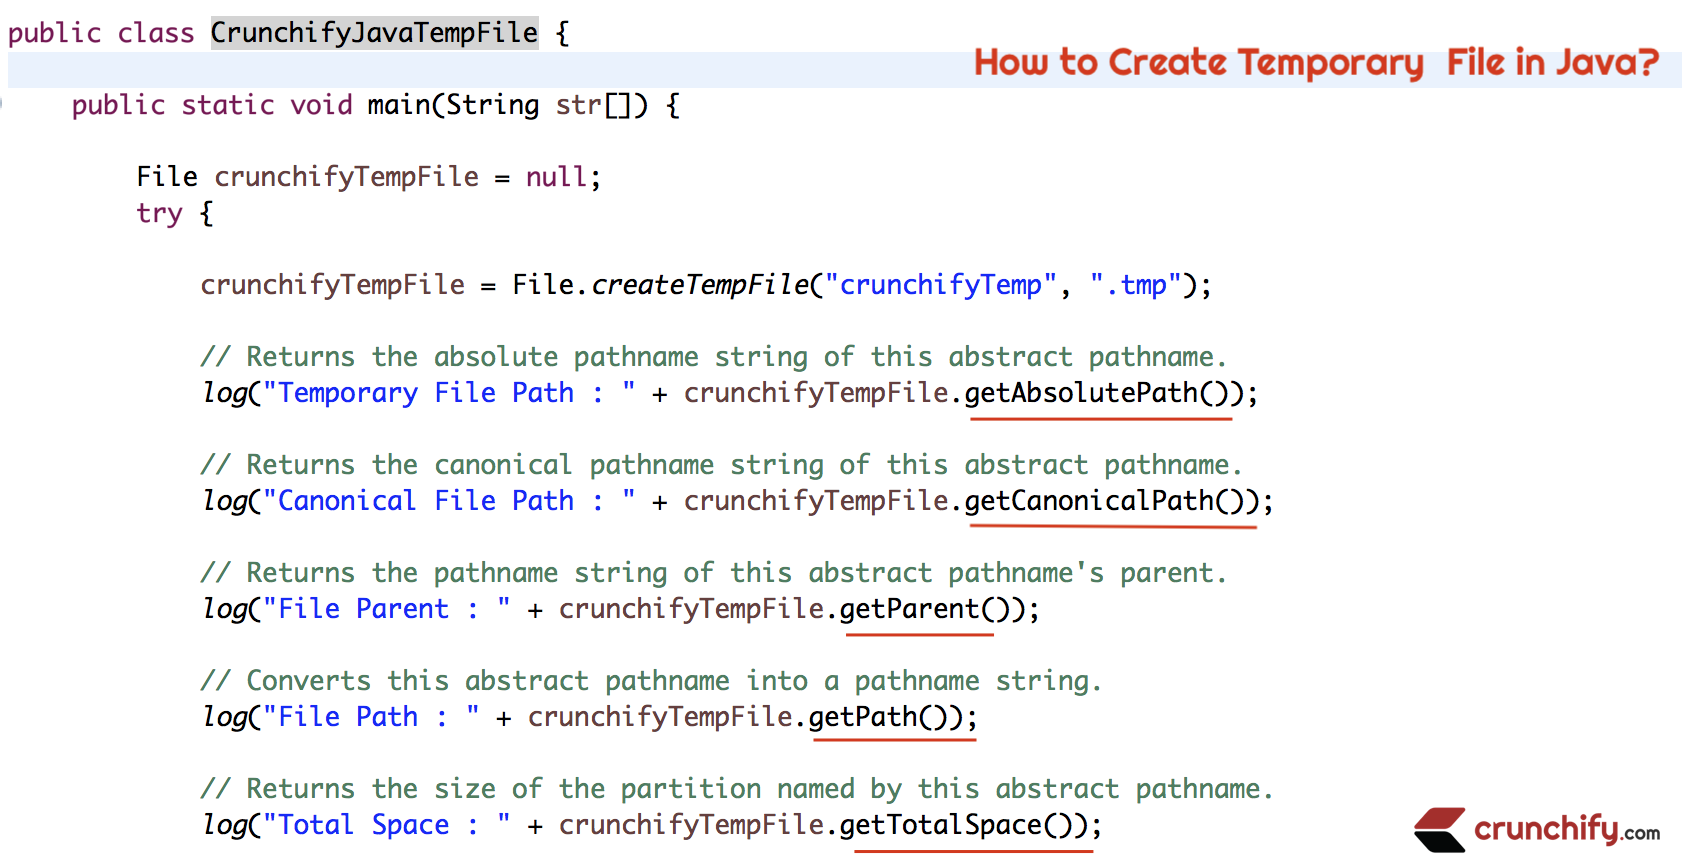 How to Create Temporary File in Java?